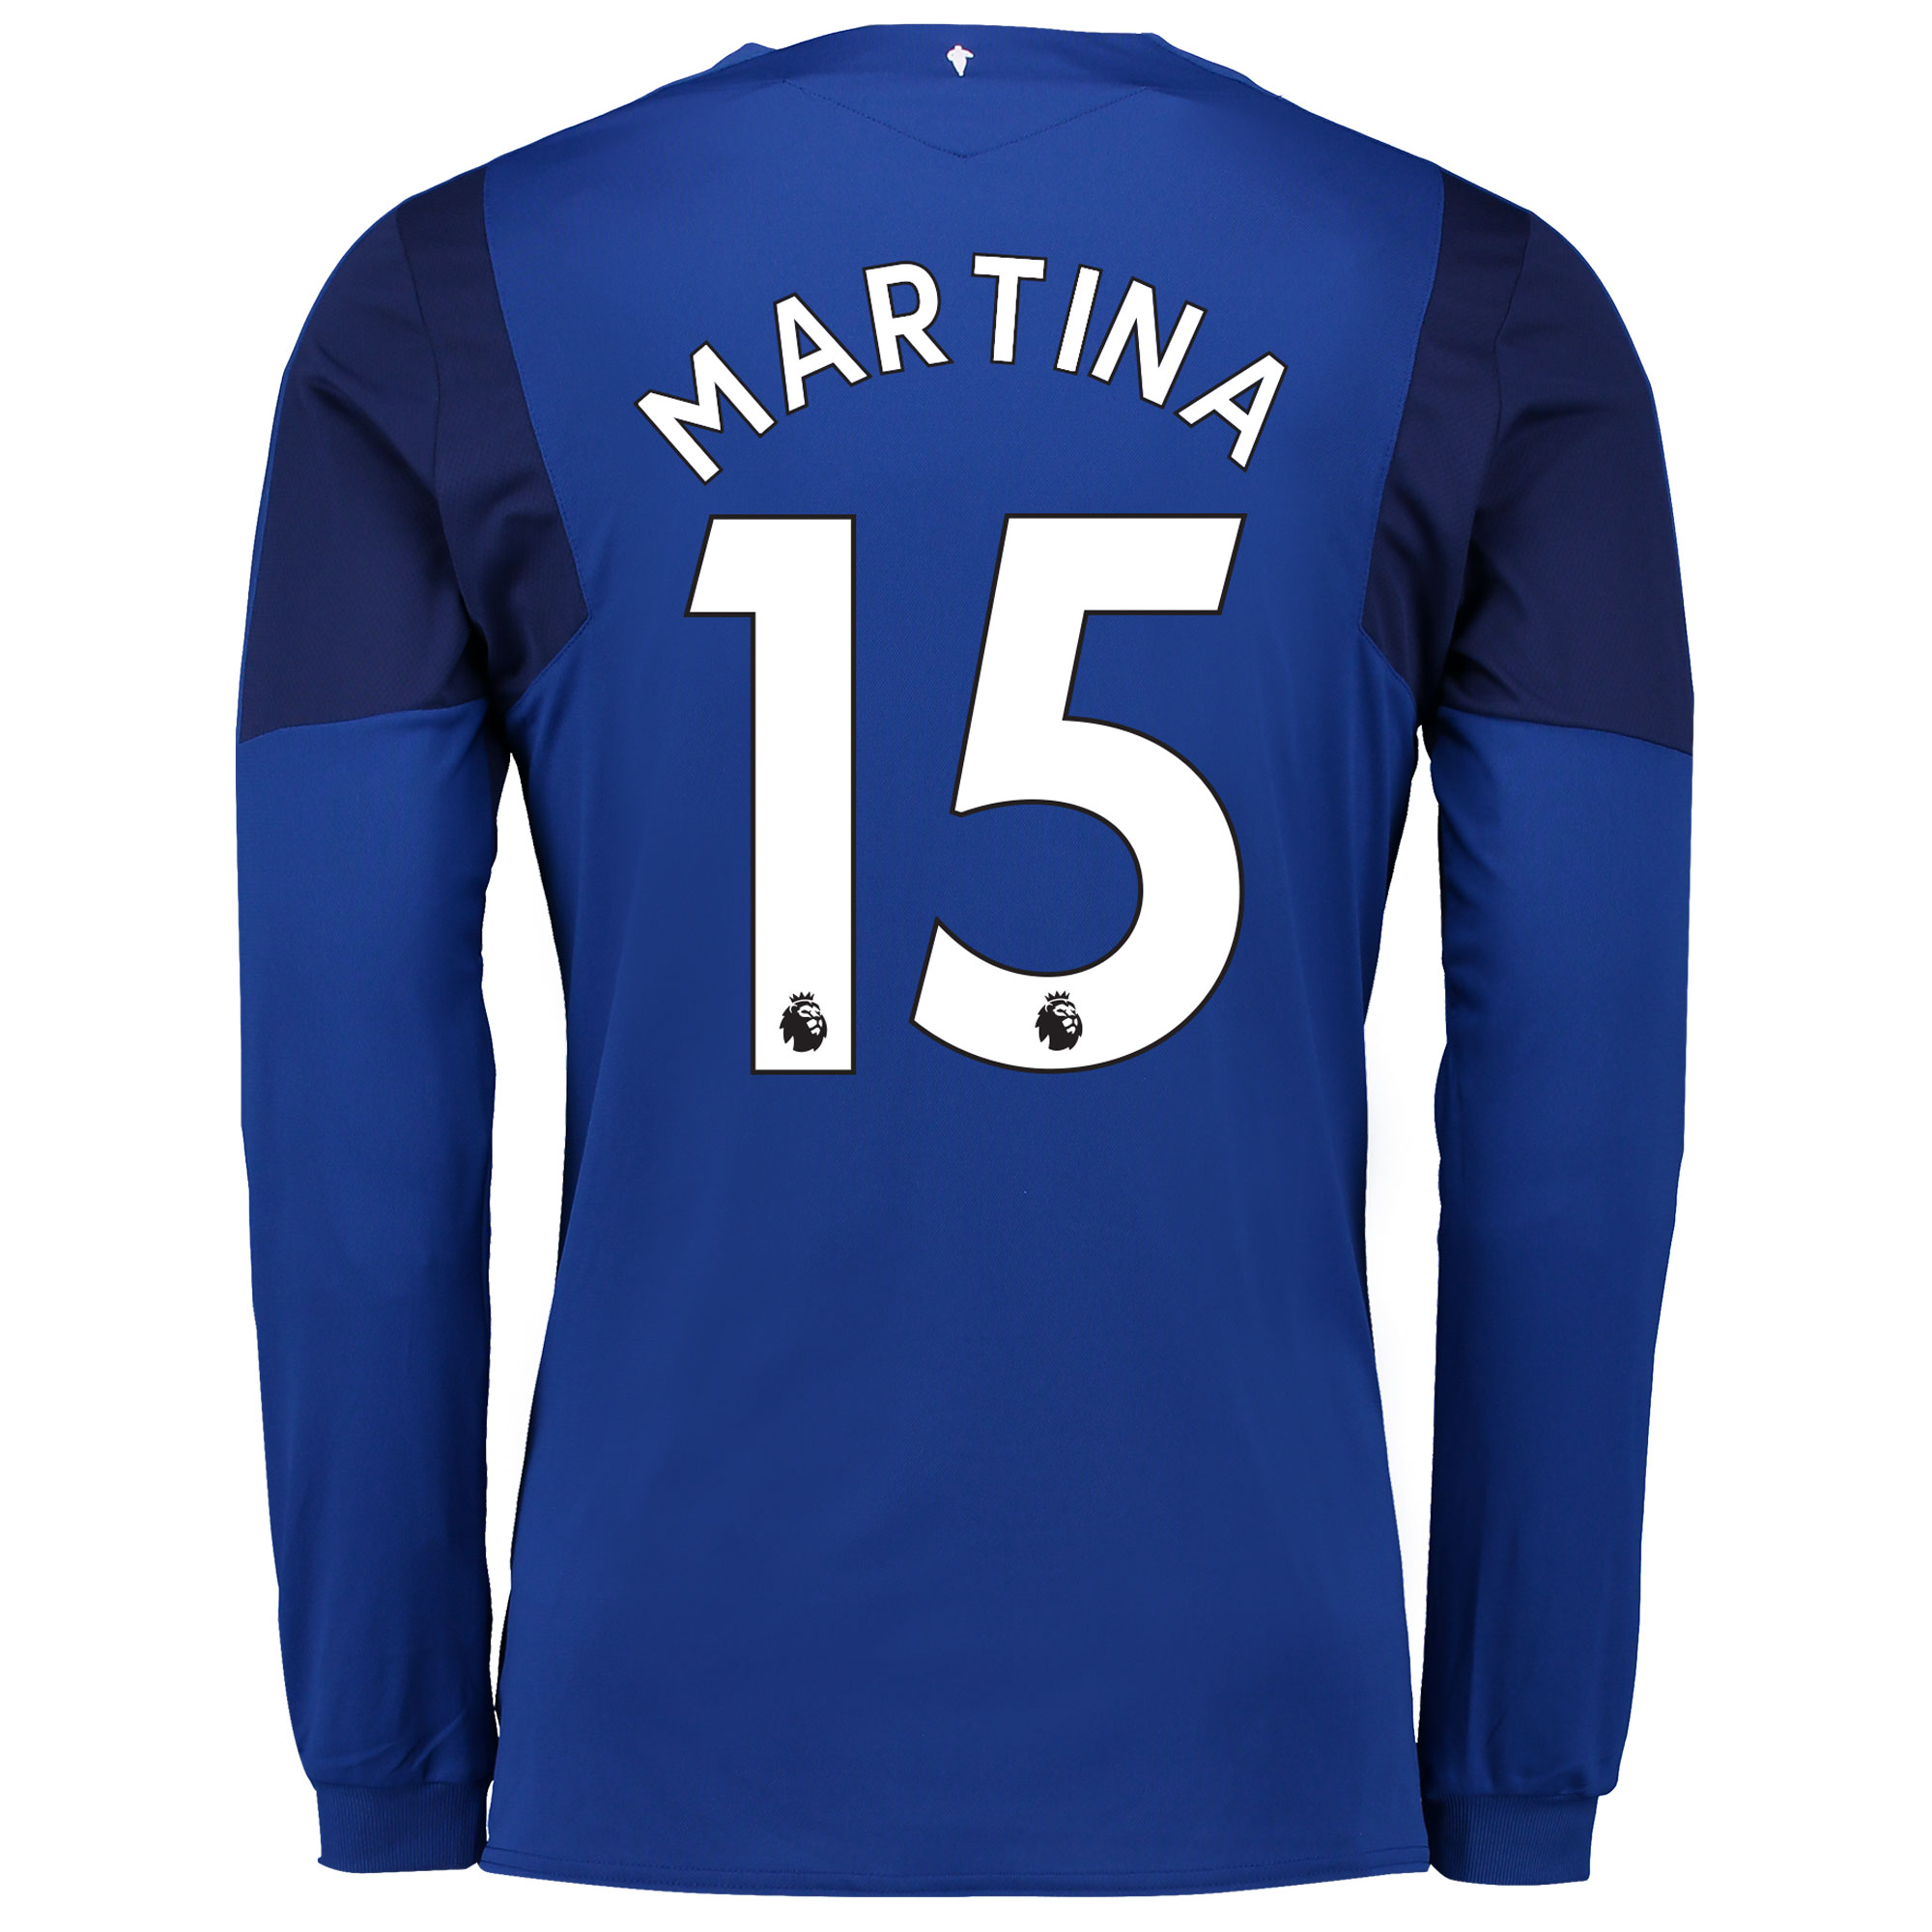 Everton Home Shirt 2017/18 - Junior - Long Sleeved with Martina 15 pri